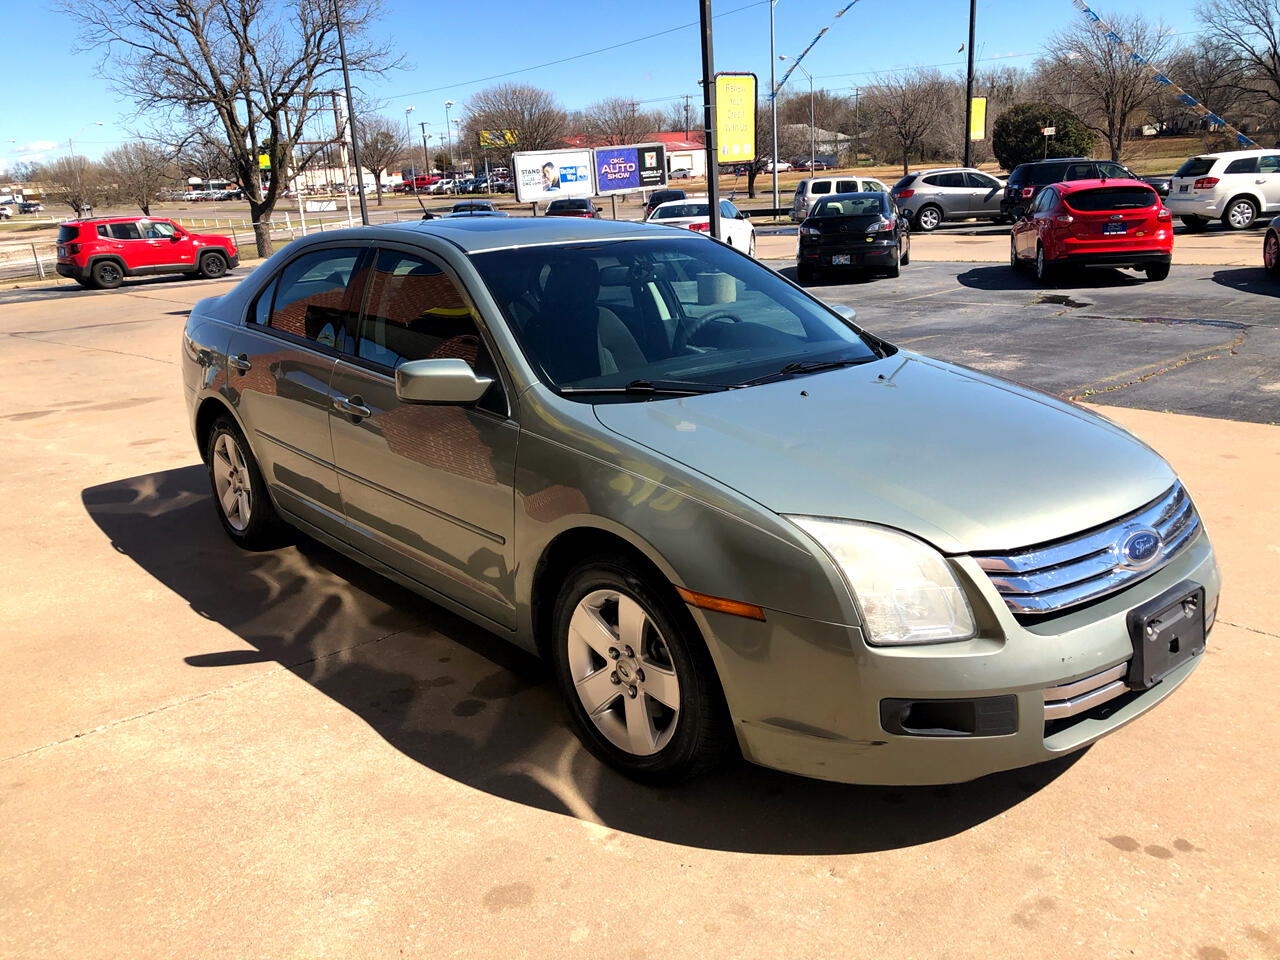 2009 Ford Fusion 4dr Sdn I4 SE FWD